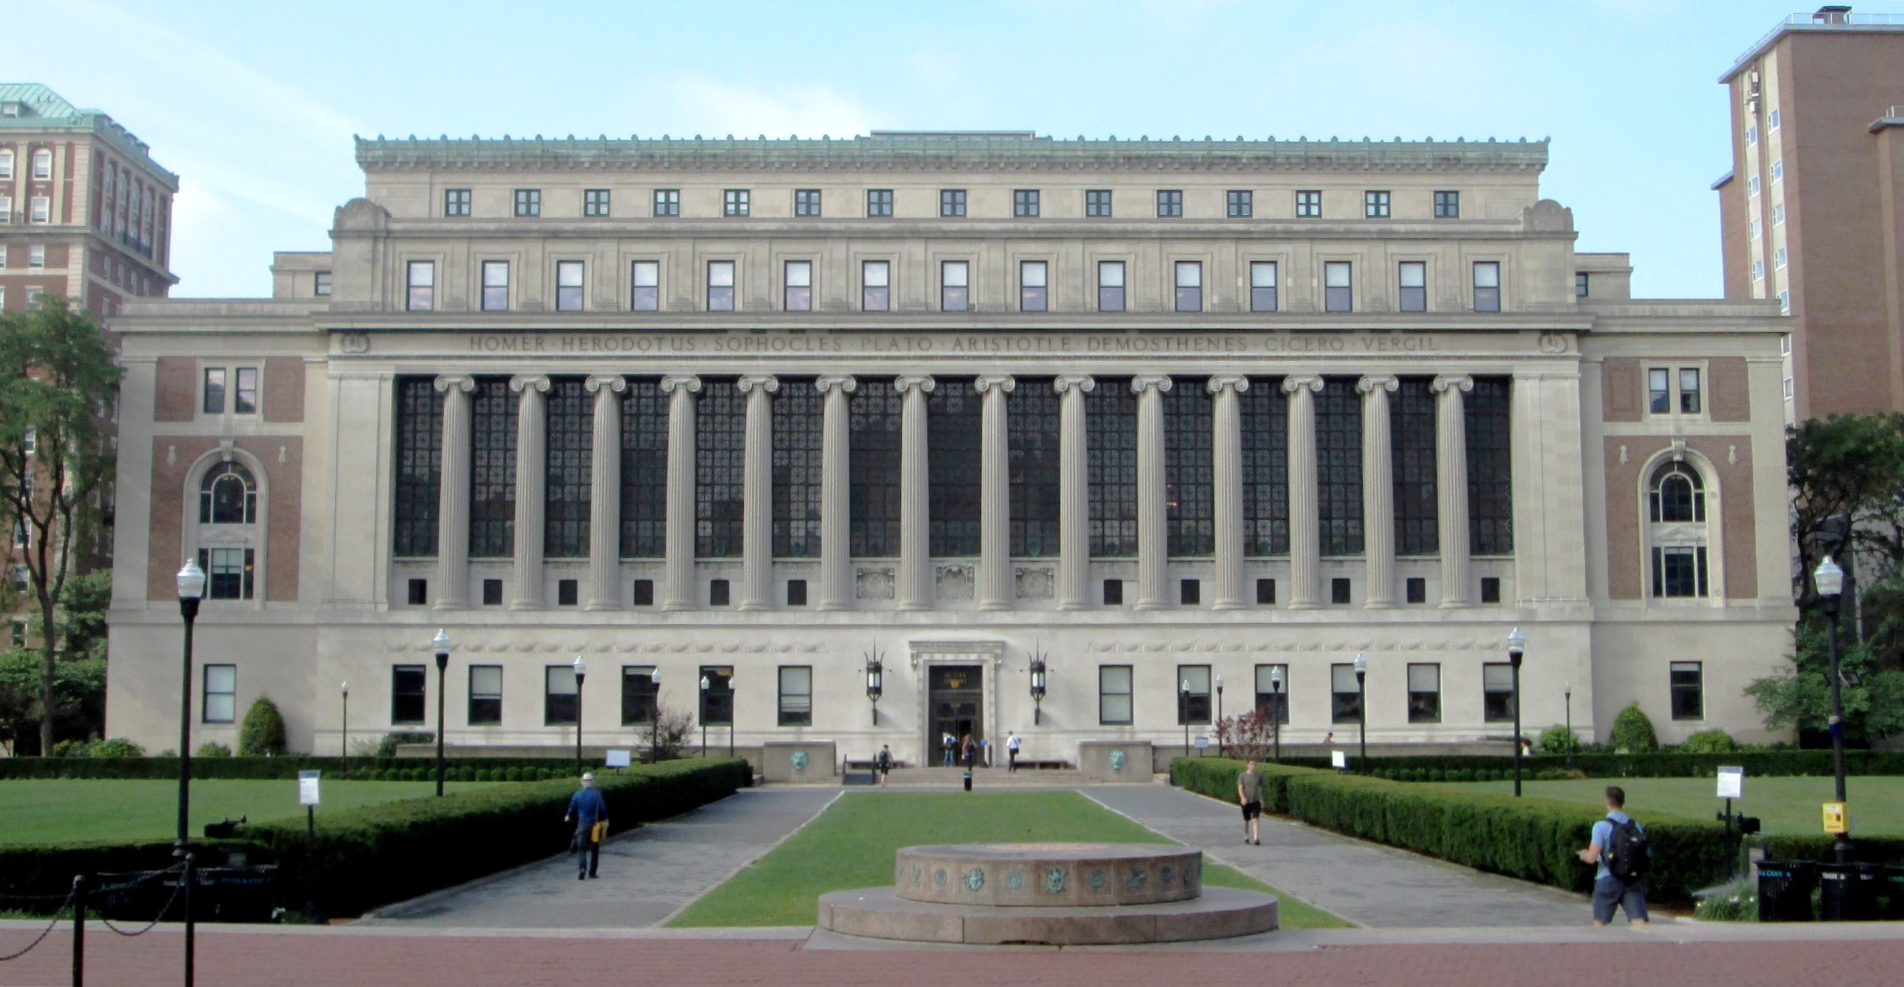 dating scene at columbia university Columbia university's master of science in data science offers students an in depth education experience to focus on data science as it data science institute.